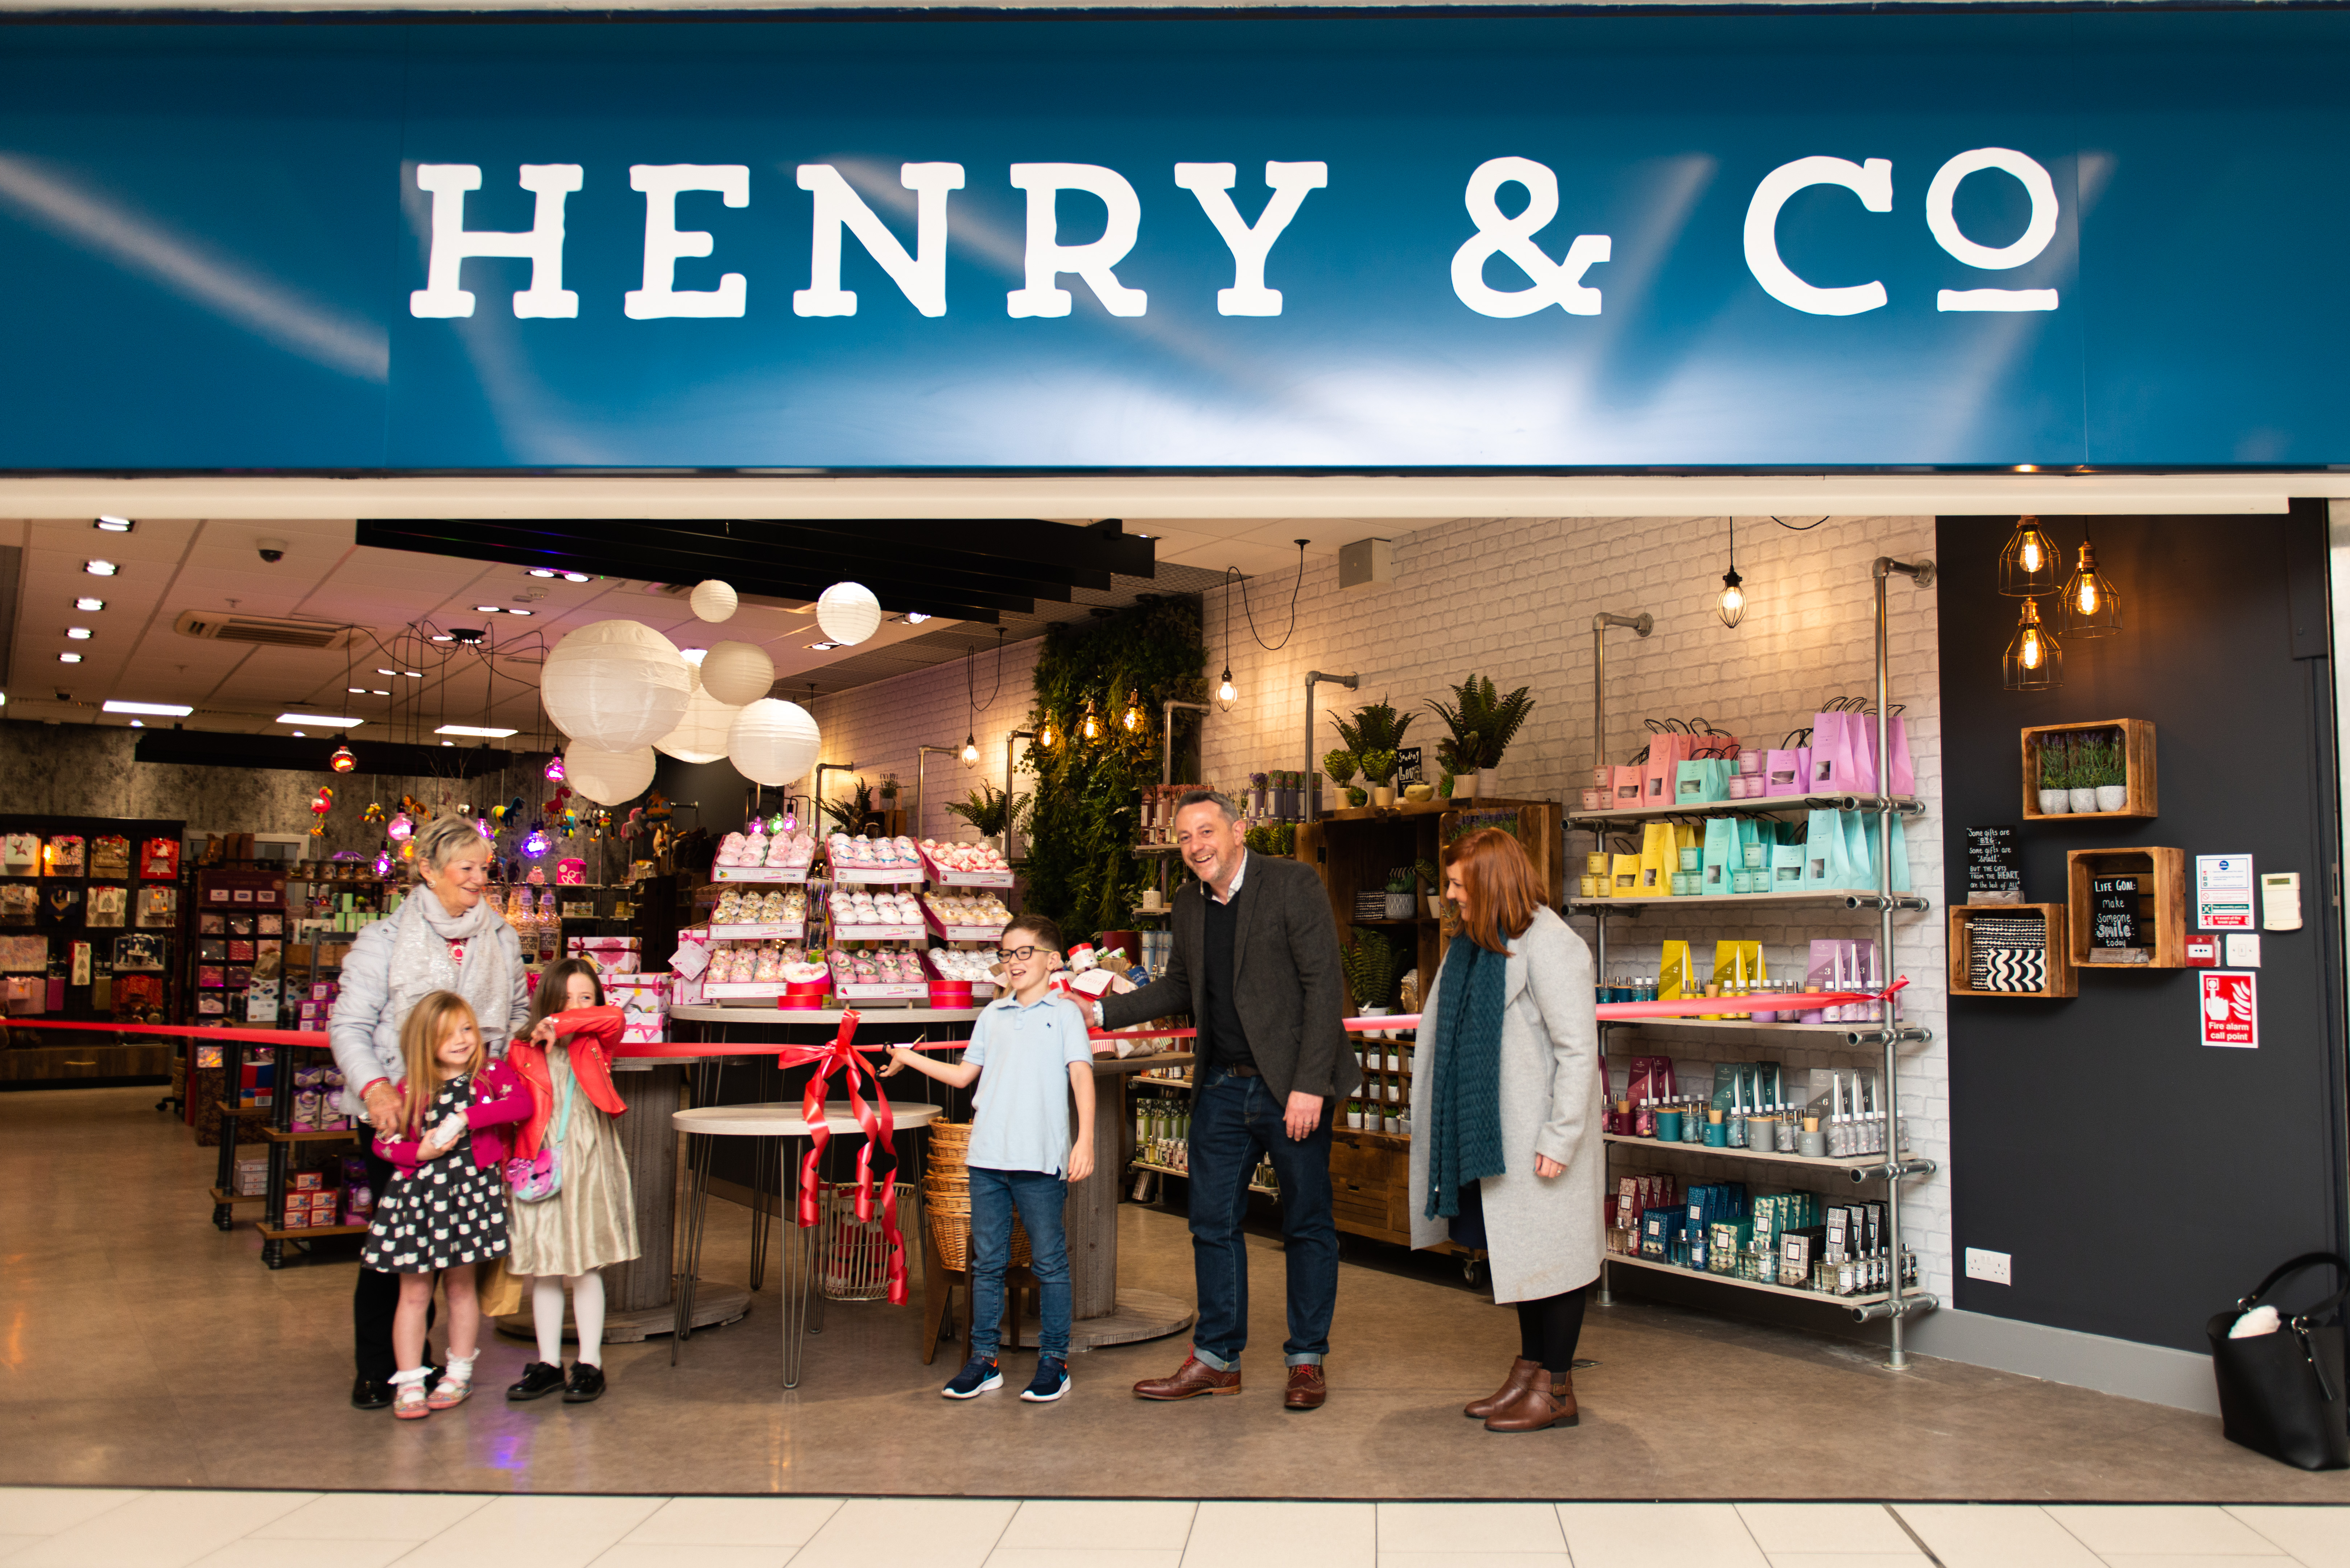 Above: Nine year Henry was given the job of cutting the ribbon to pronounce the shop open.